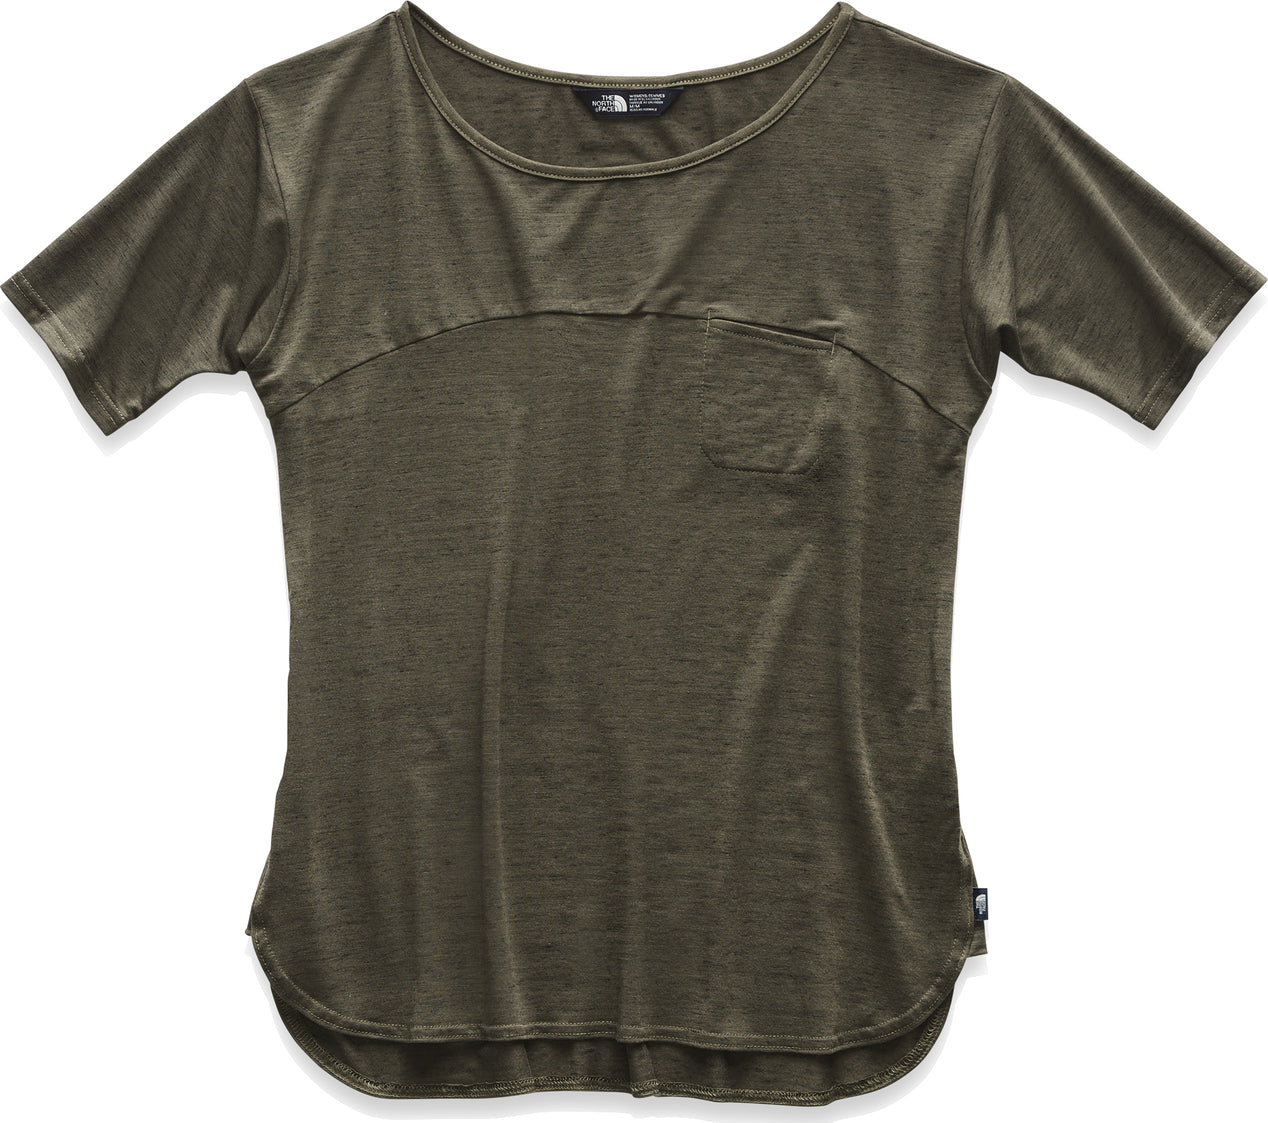 9f89609b62a65 The North Face Short Sleeve Summerton Top - Women's   Altitude Sports